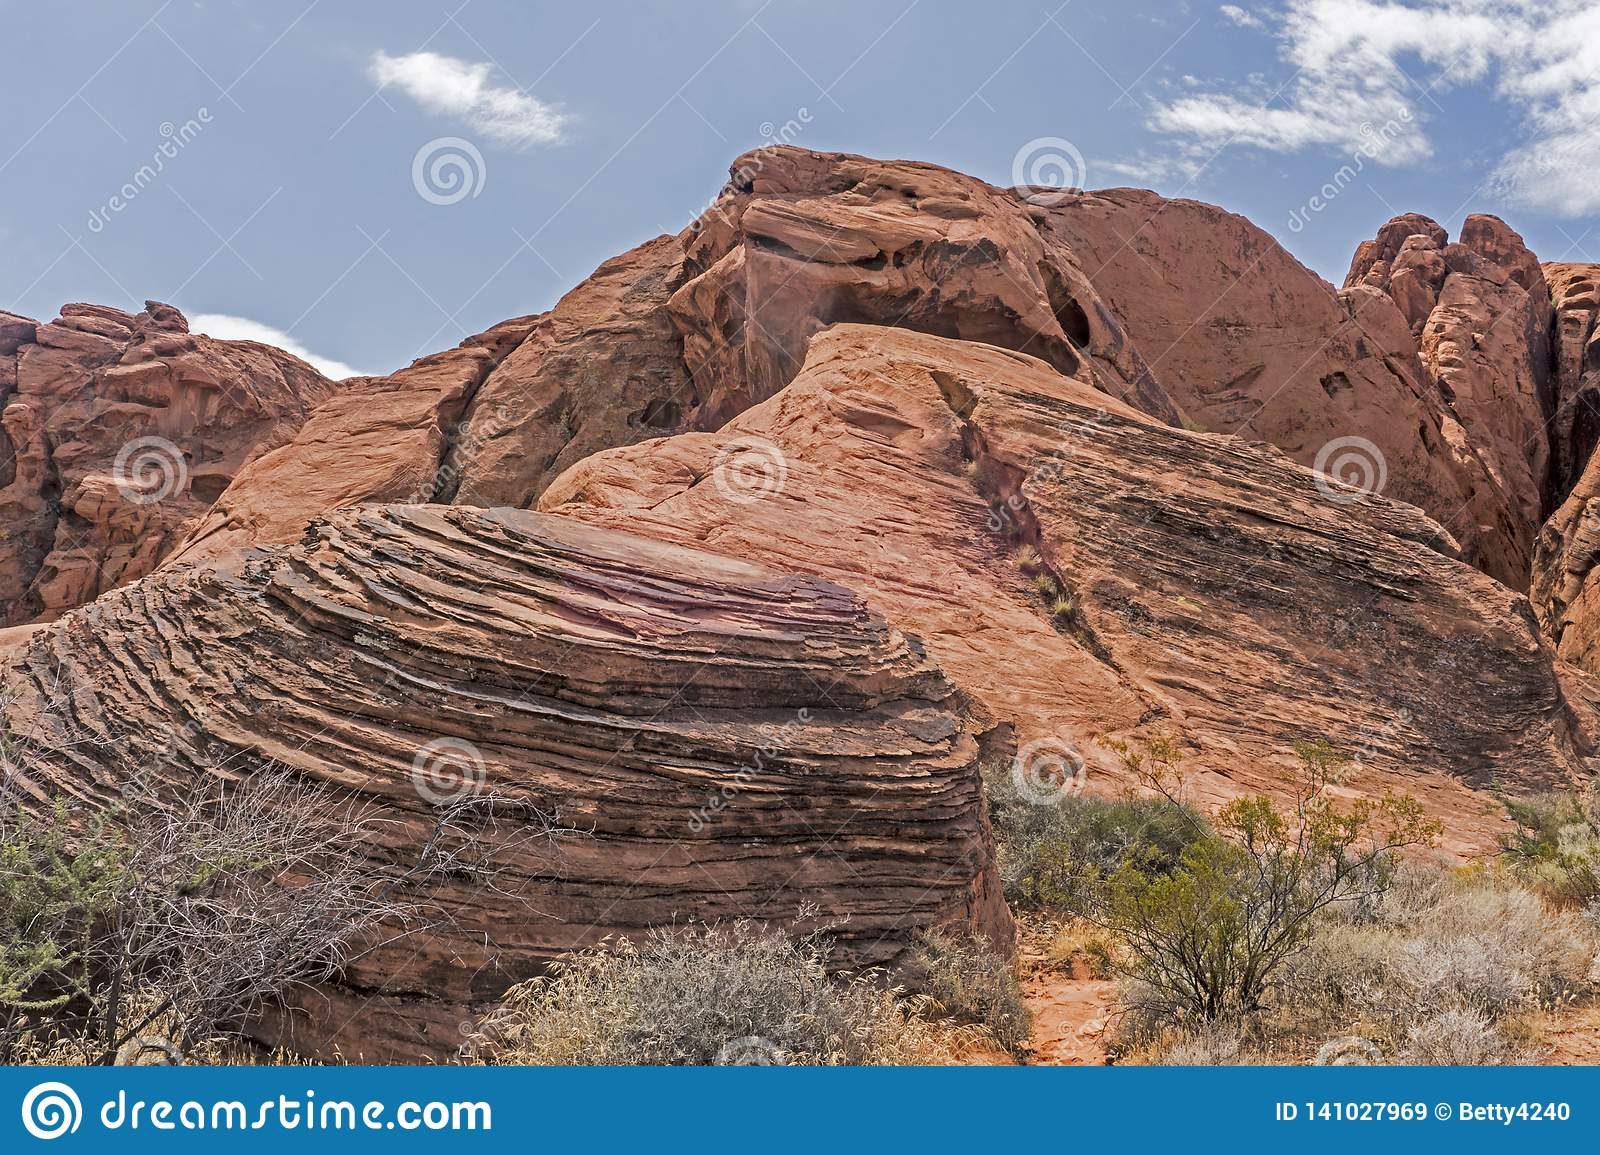 Landscape Of Painted Rocks And Boulders In Red Rock Canyon  Stock